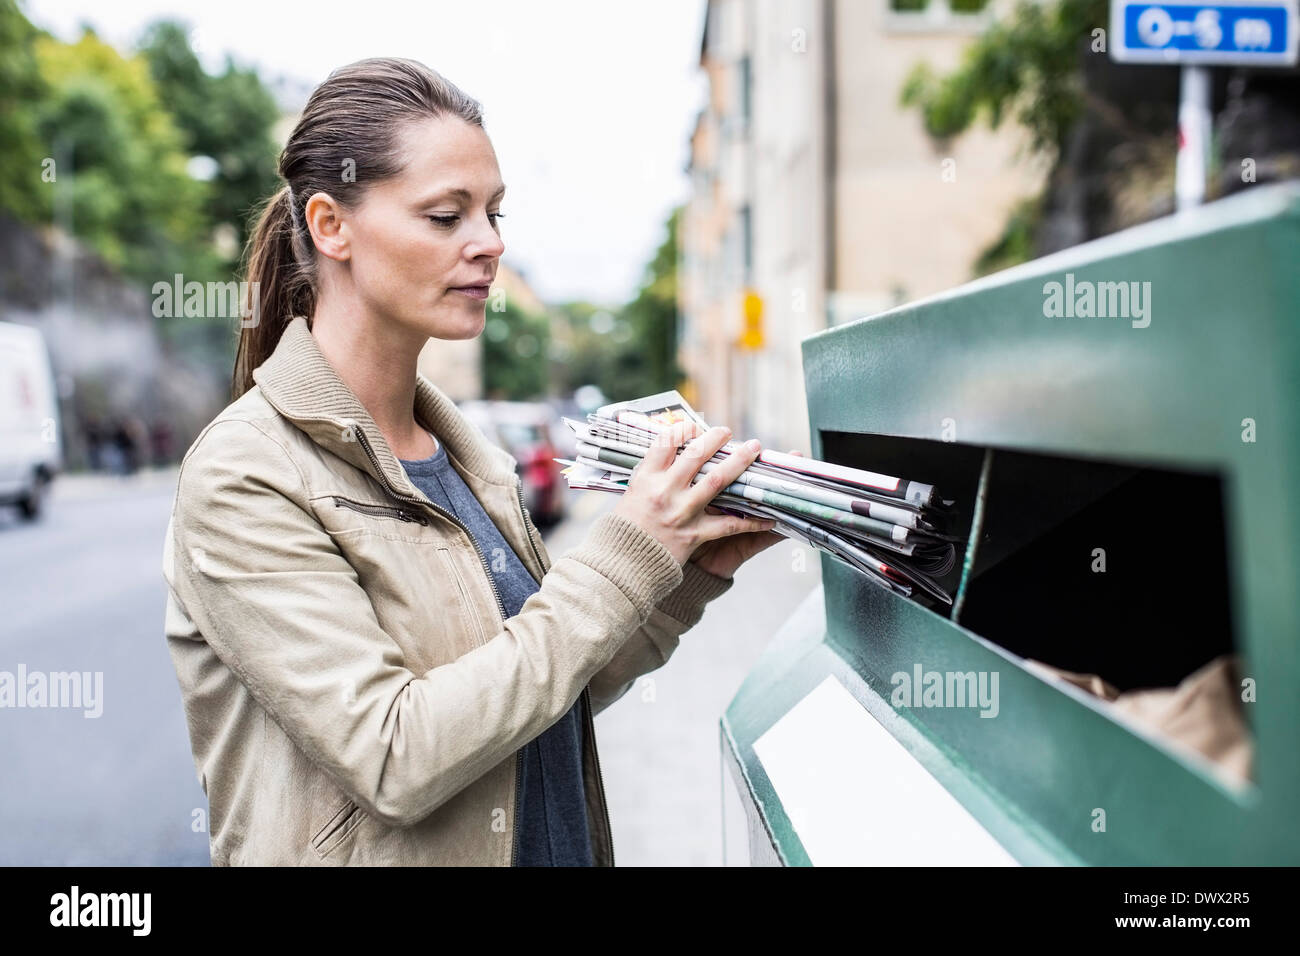 Mid adult woman putting newspapers into recycling bin - Stock Image